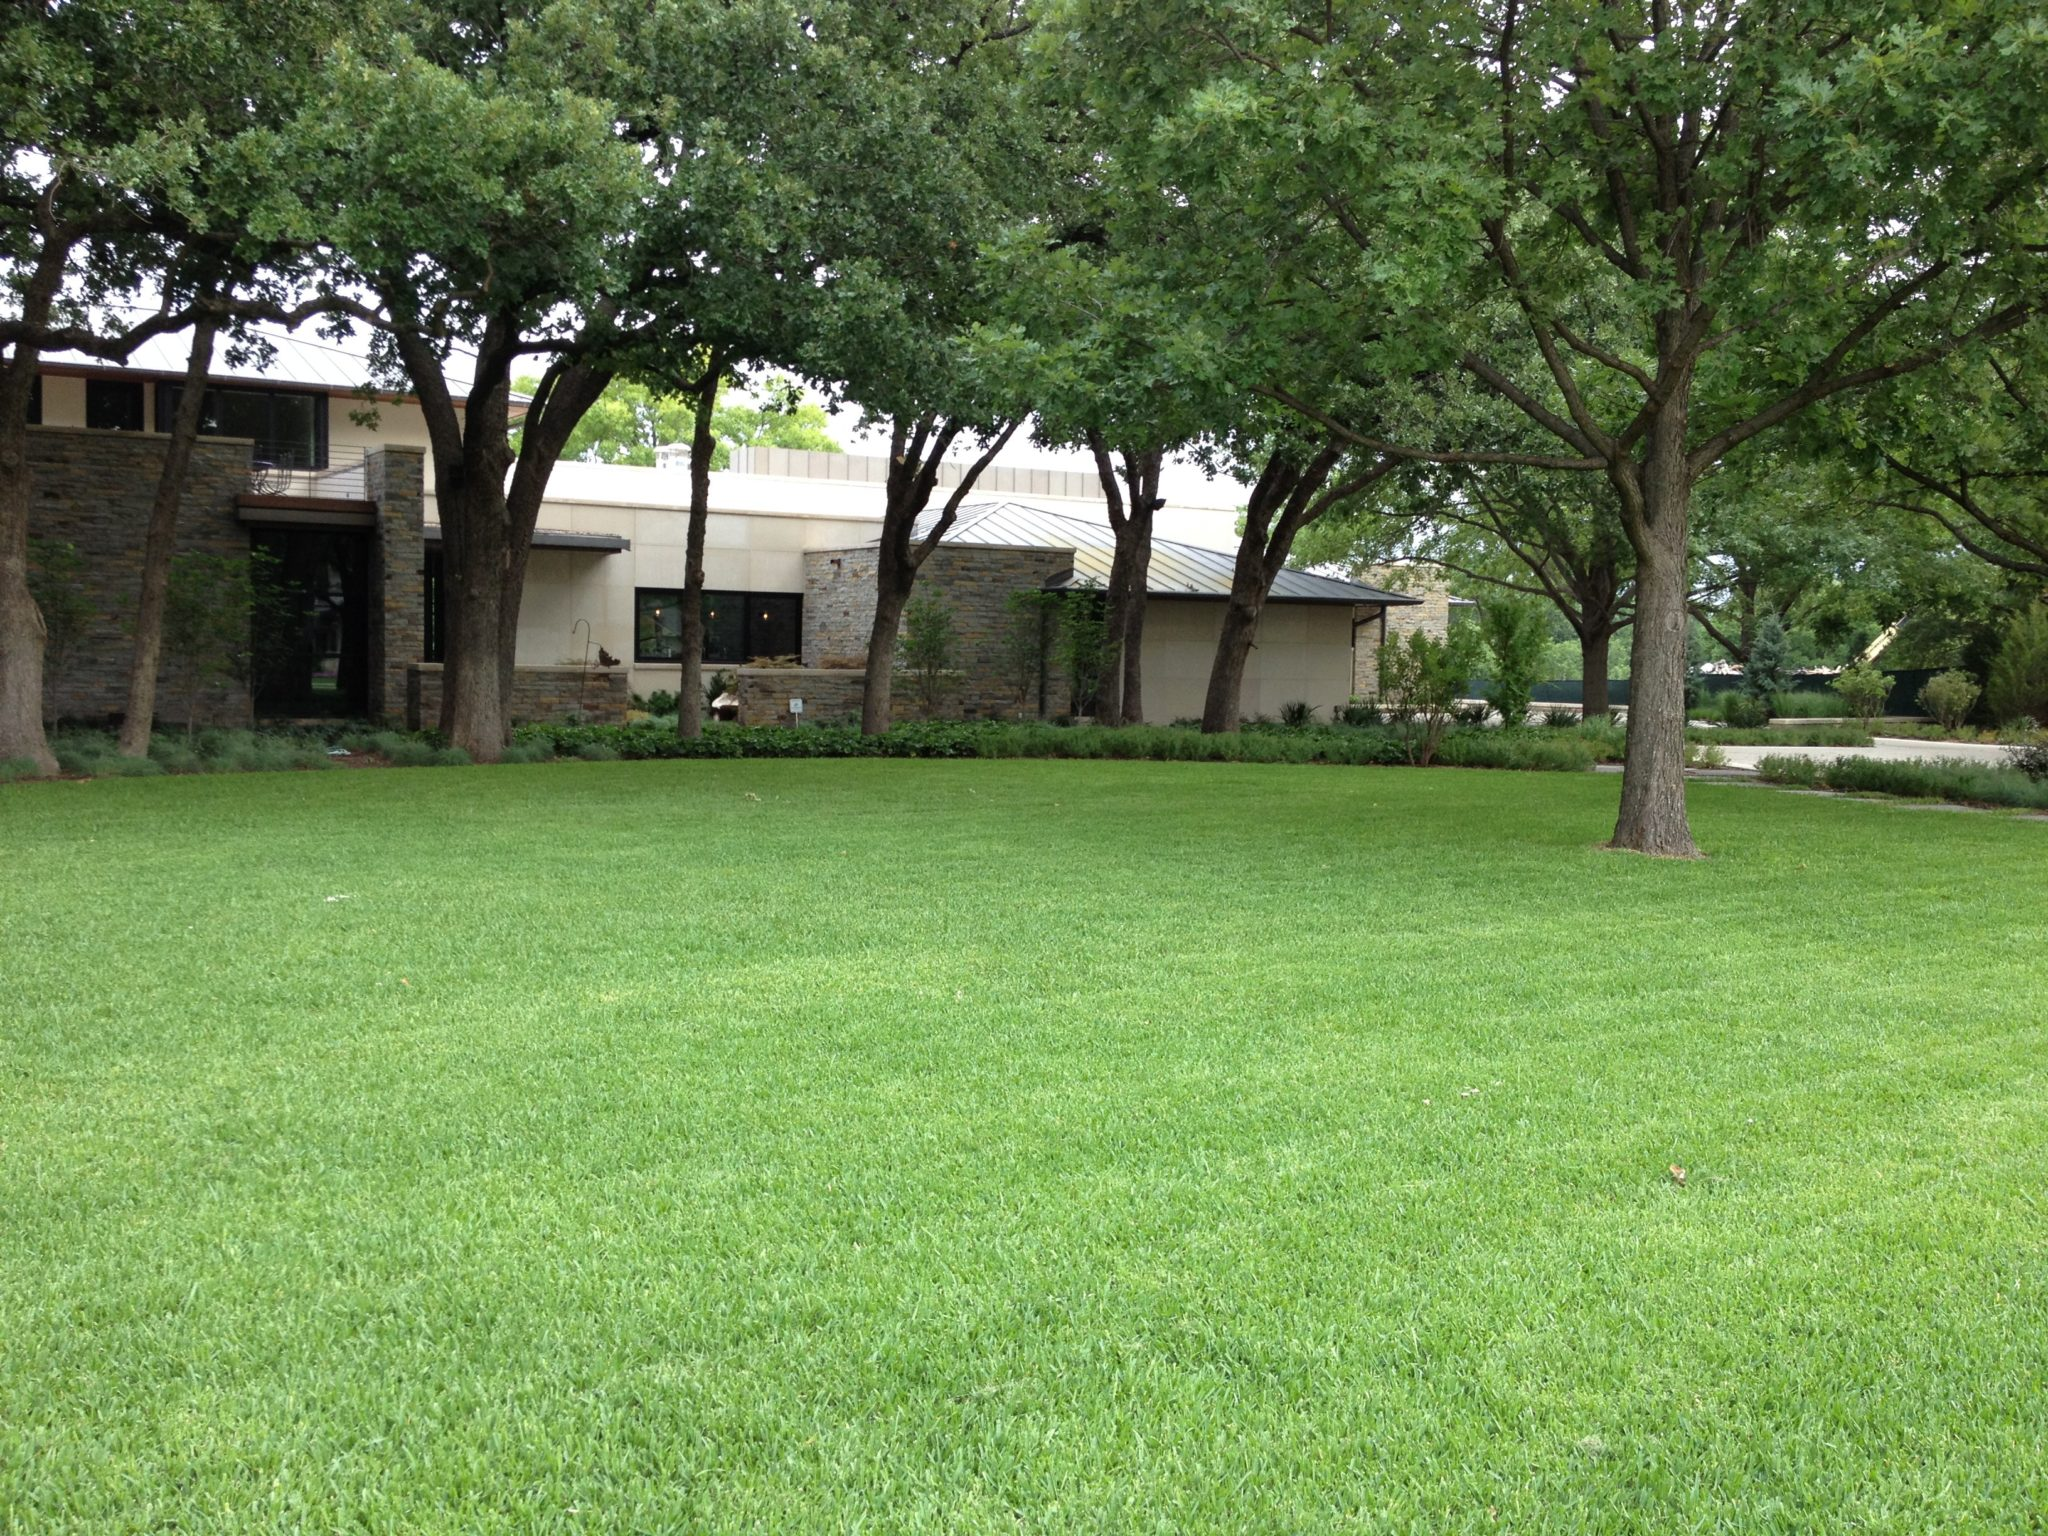 Landscape services in Plano